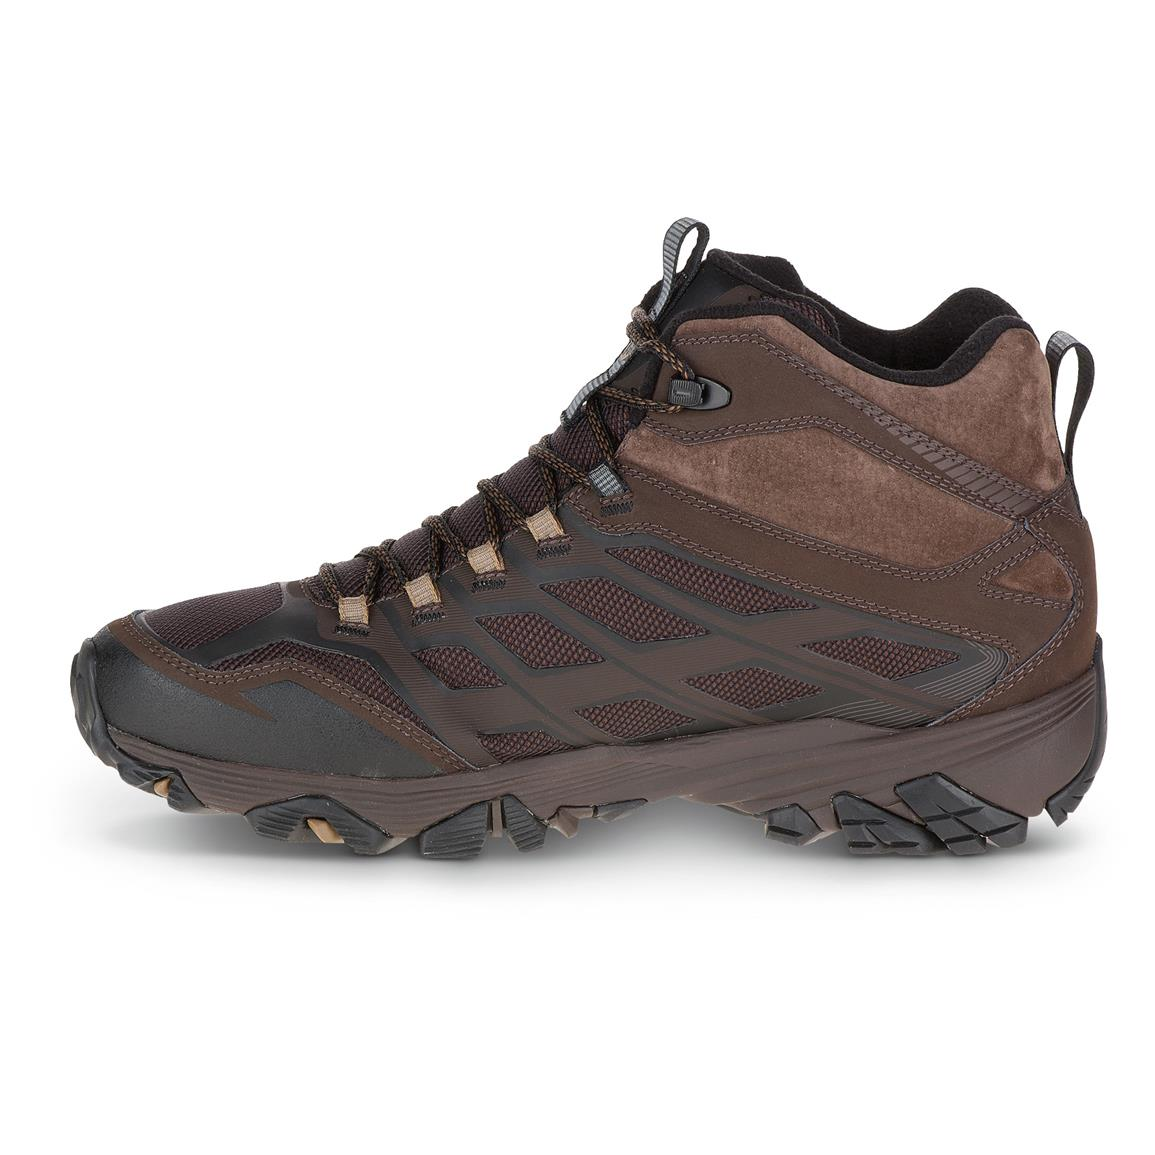 Merrell M Select WARM lightweight, low-bulk 100-gram insulation keeps you comfortable